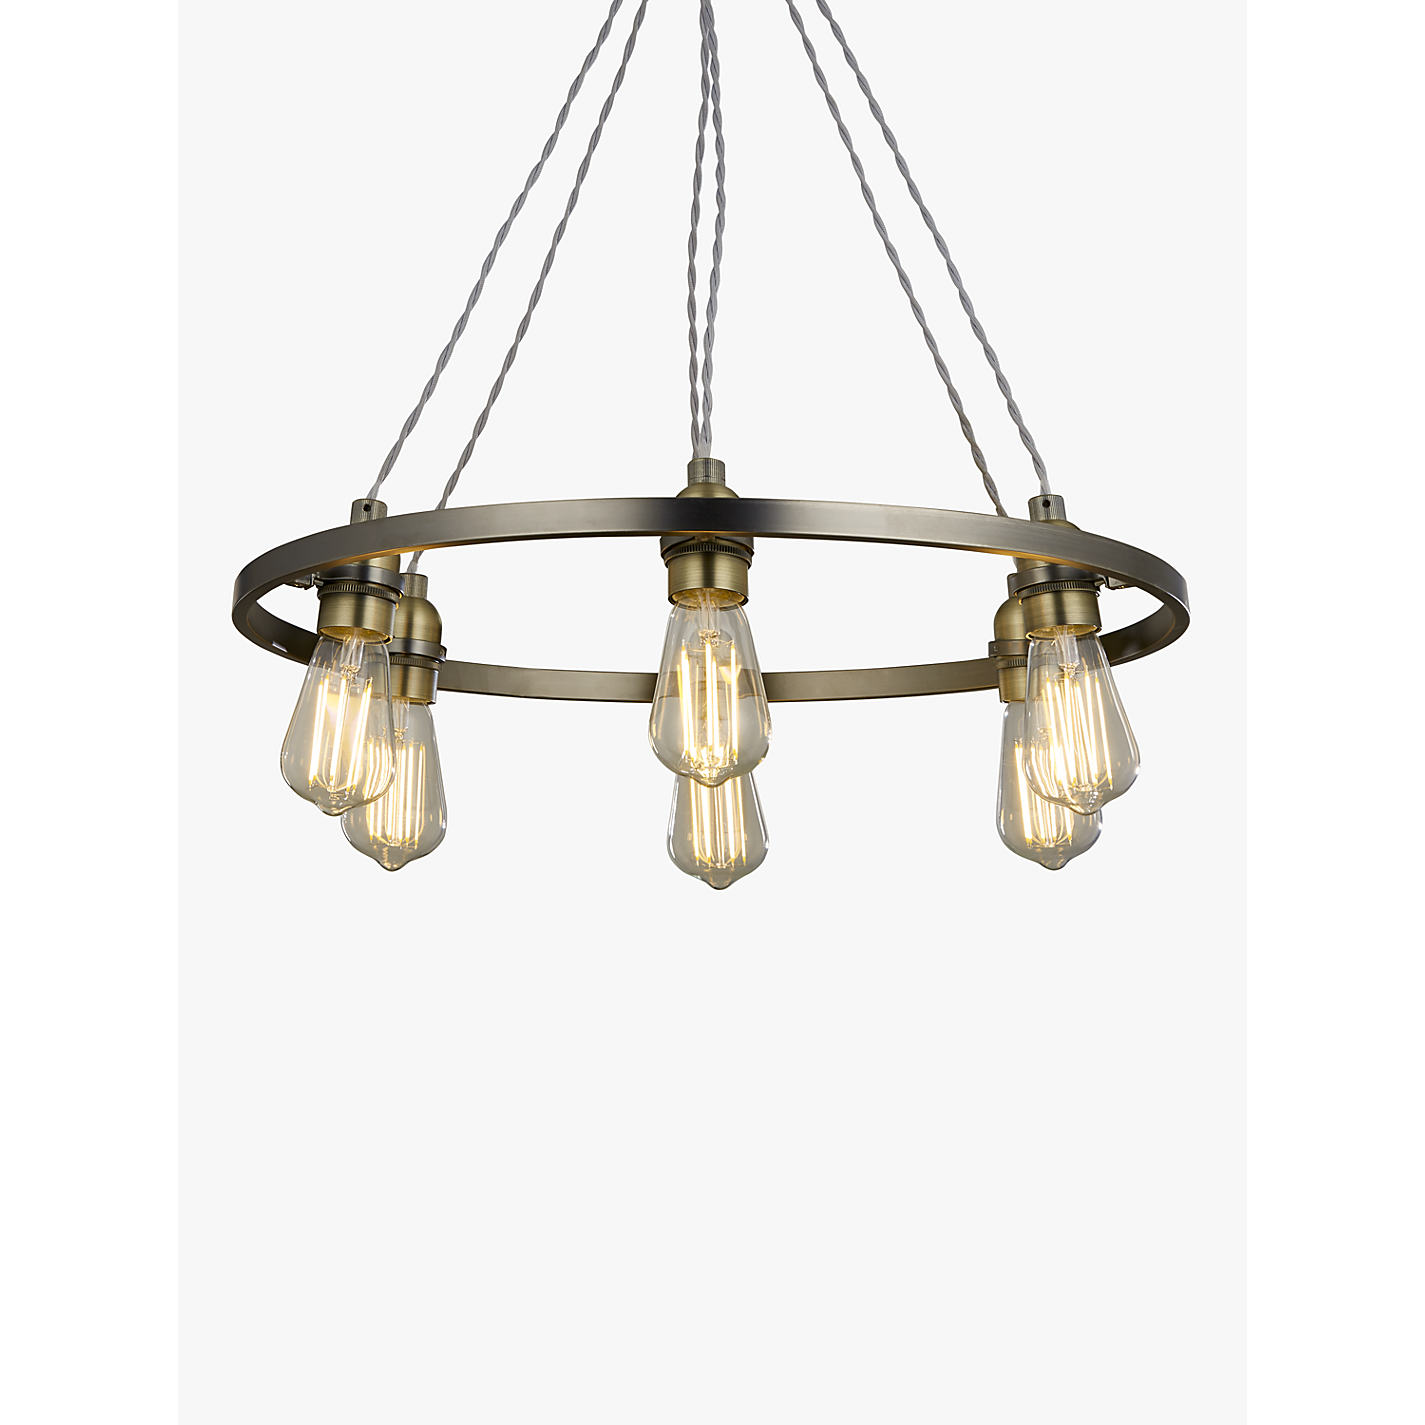 Buy john lewis bistro hoop pendant ceiling light 6 light pewter buy john lewis bistro hoop pendant ceiling light 6 light pewter online at johnlewis aloadofball Gallery